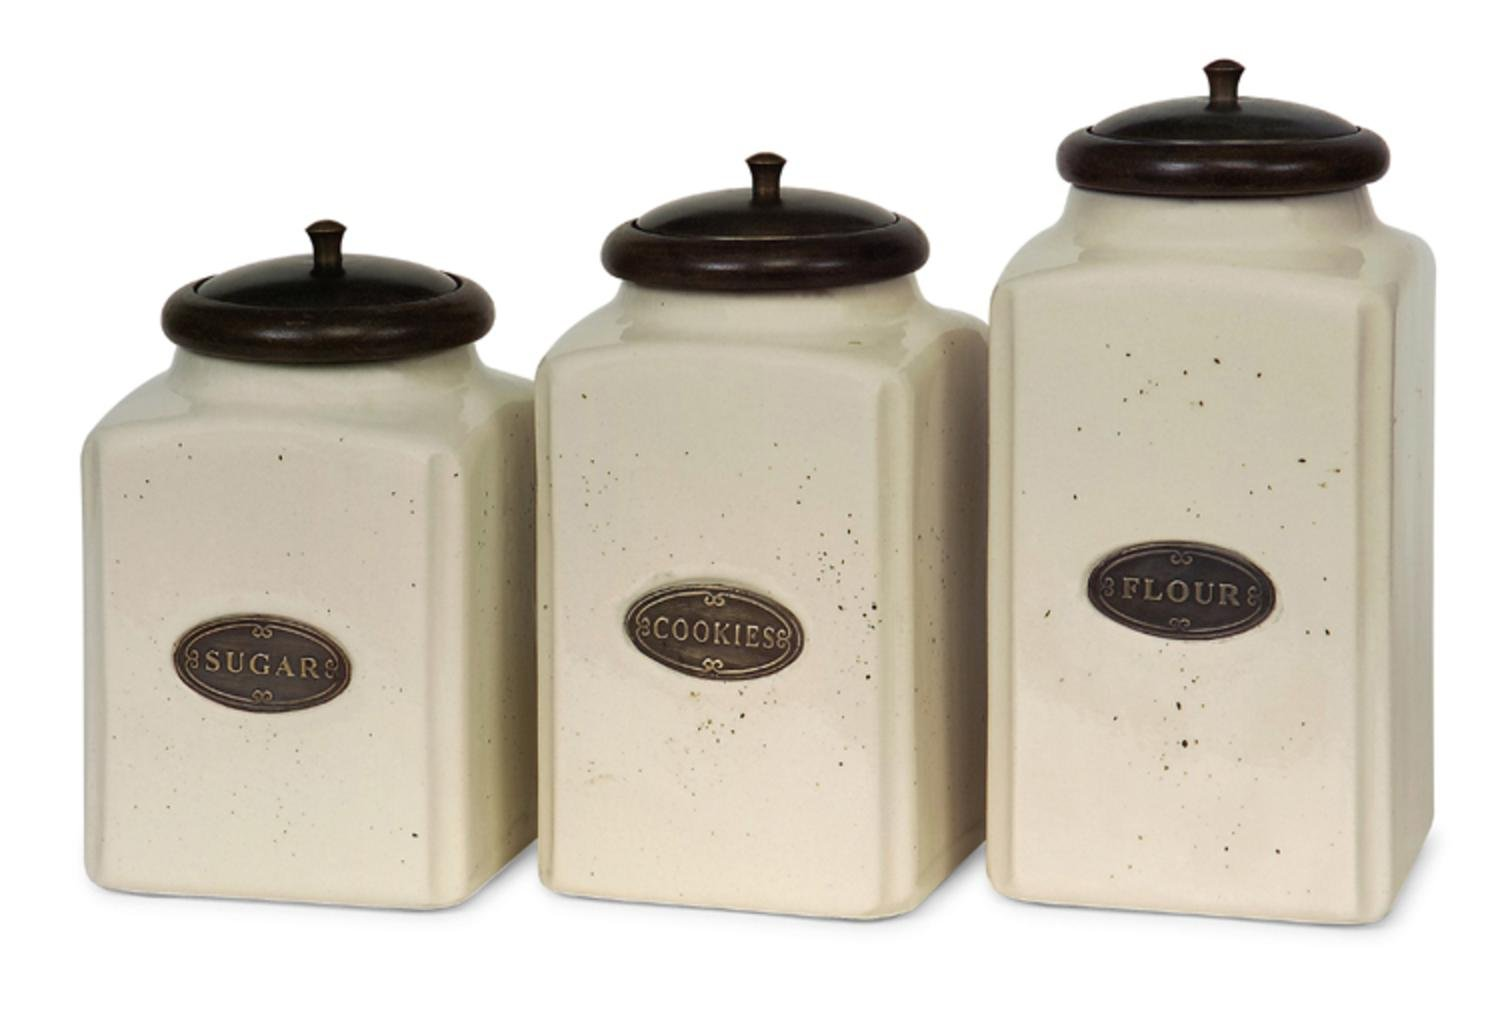 IMAX 5358-3 Ivory Canisters – Set of 3 Kitchen Containers with Mango Wood Lids, Handcrafted, Food Safe Ceramic Canisters. Kitchen Organizing Accessories